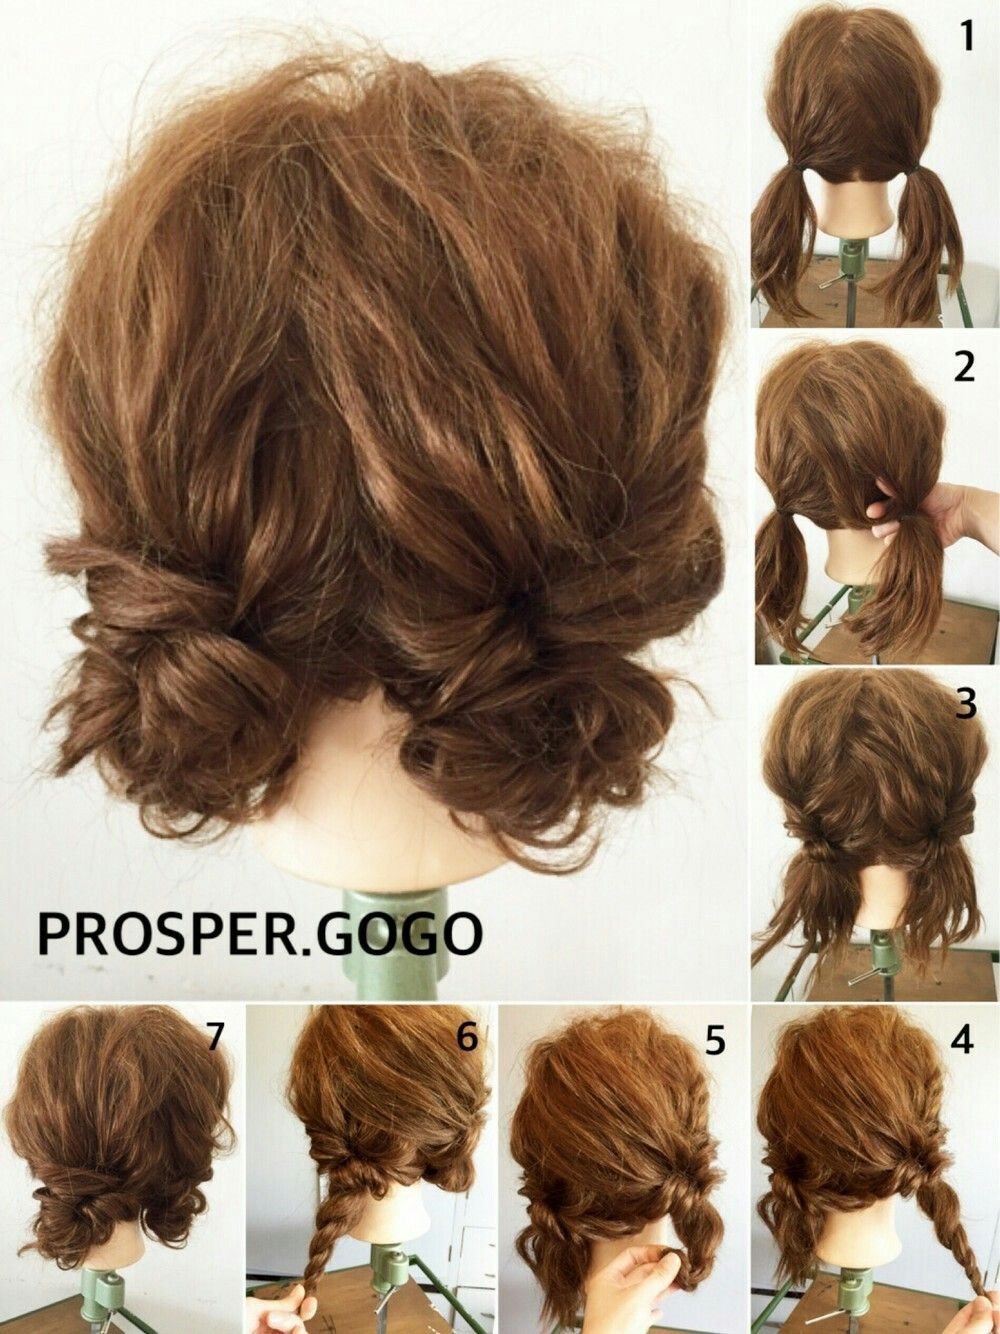 Low space buns hair styles pinterest spaces hair style and makeup